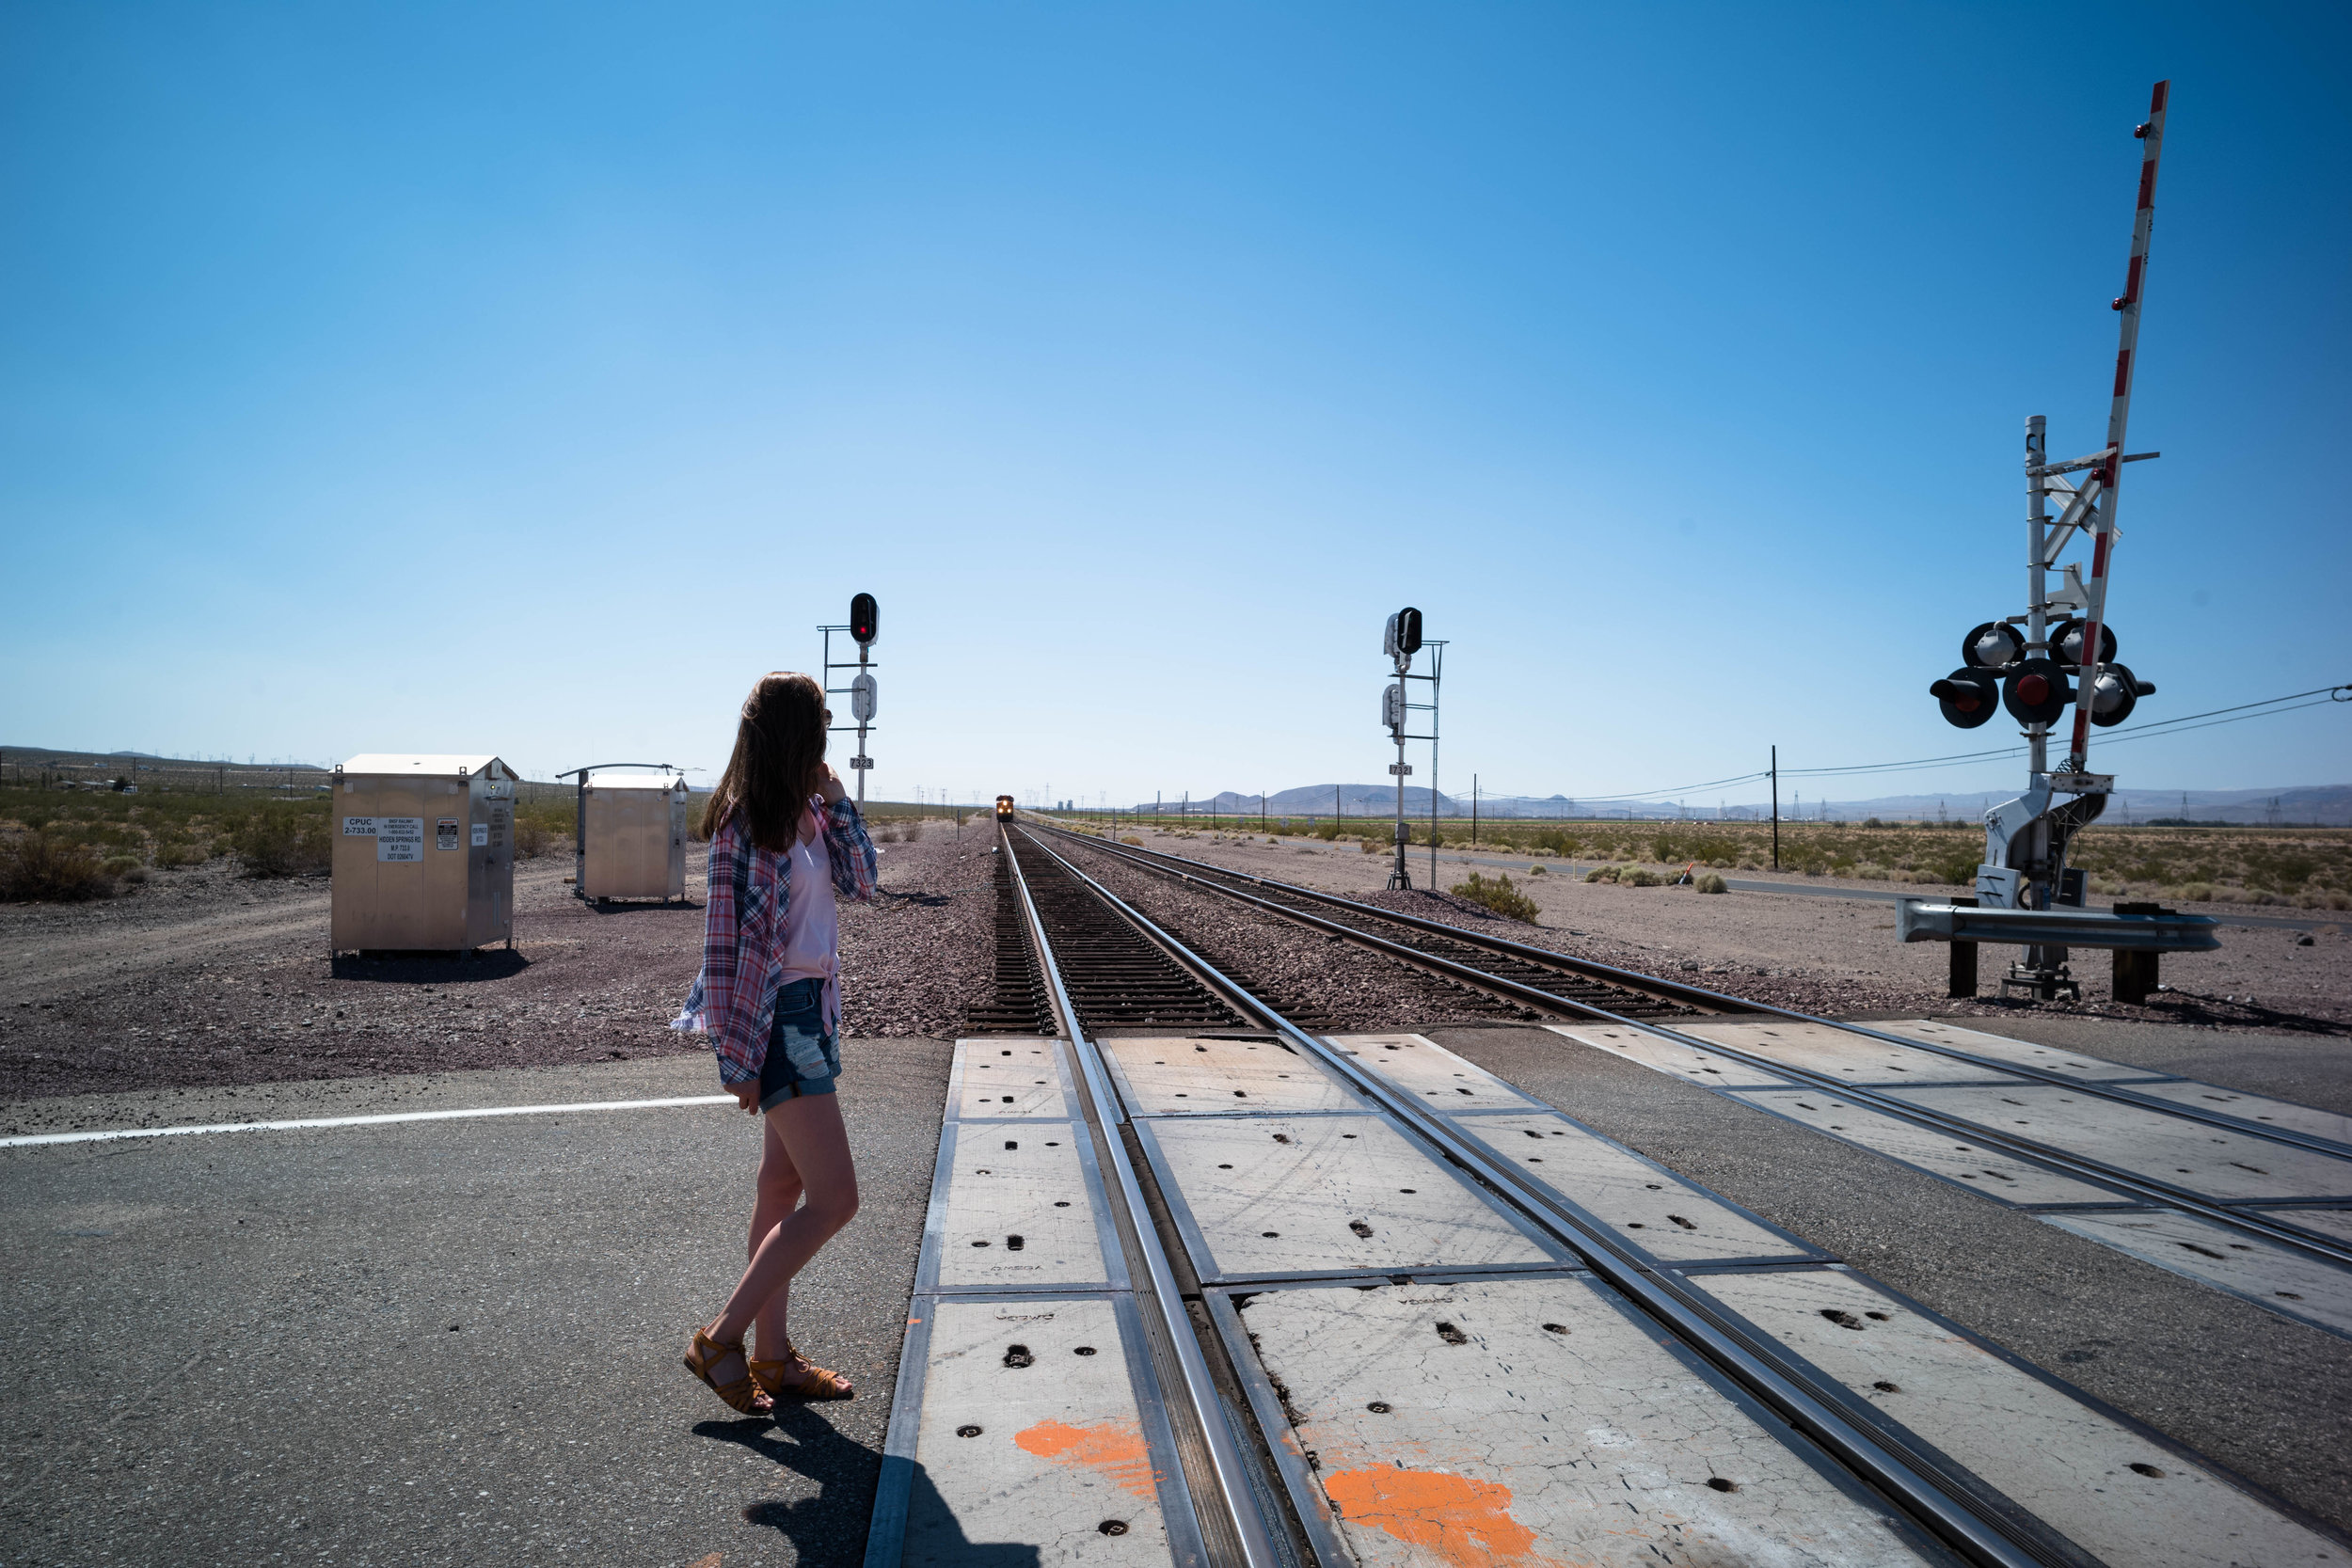 Seeing the approaching train. Notice how far away the train appears, shot with this lens. Leica 21mm f/3.4 Super Elmar ASPH